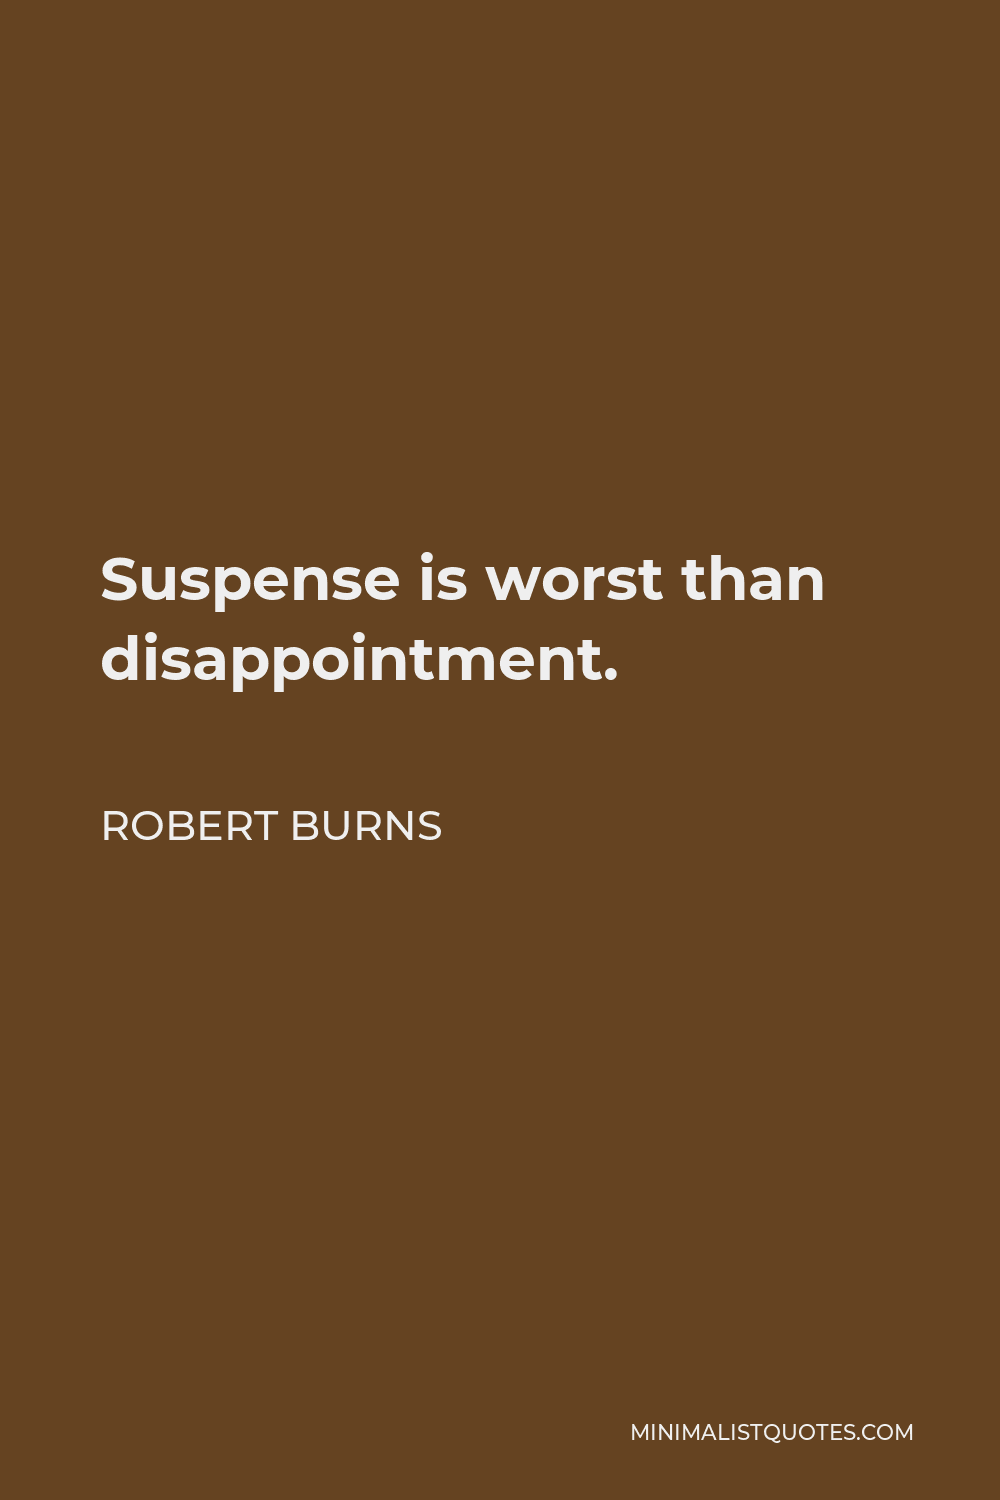 Robert Burns Quote - Suspense is worst than disappointment.